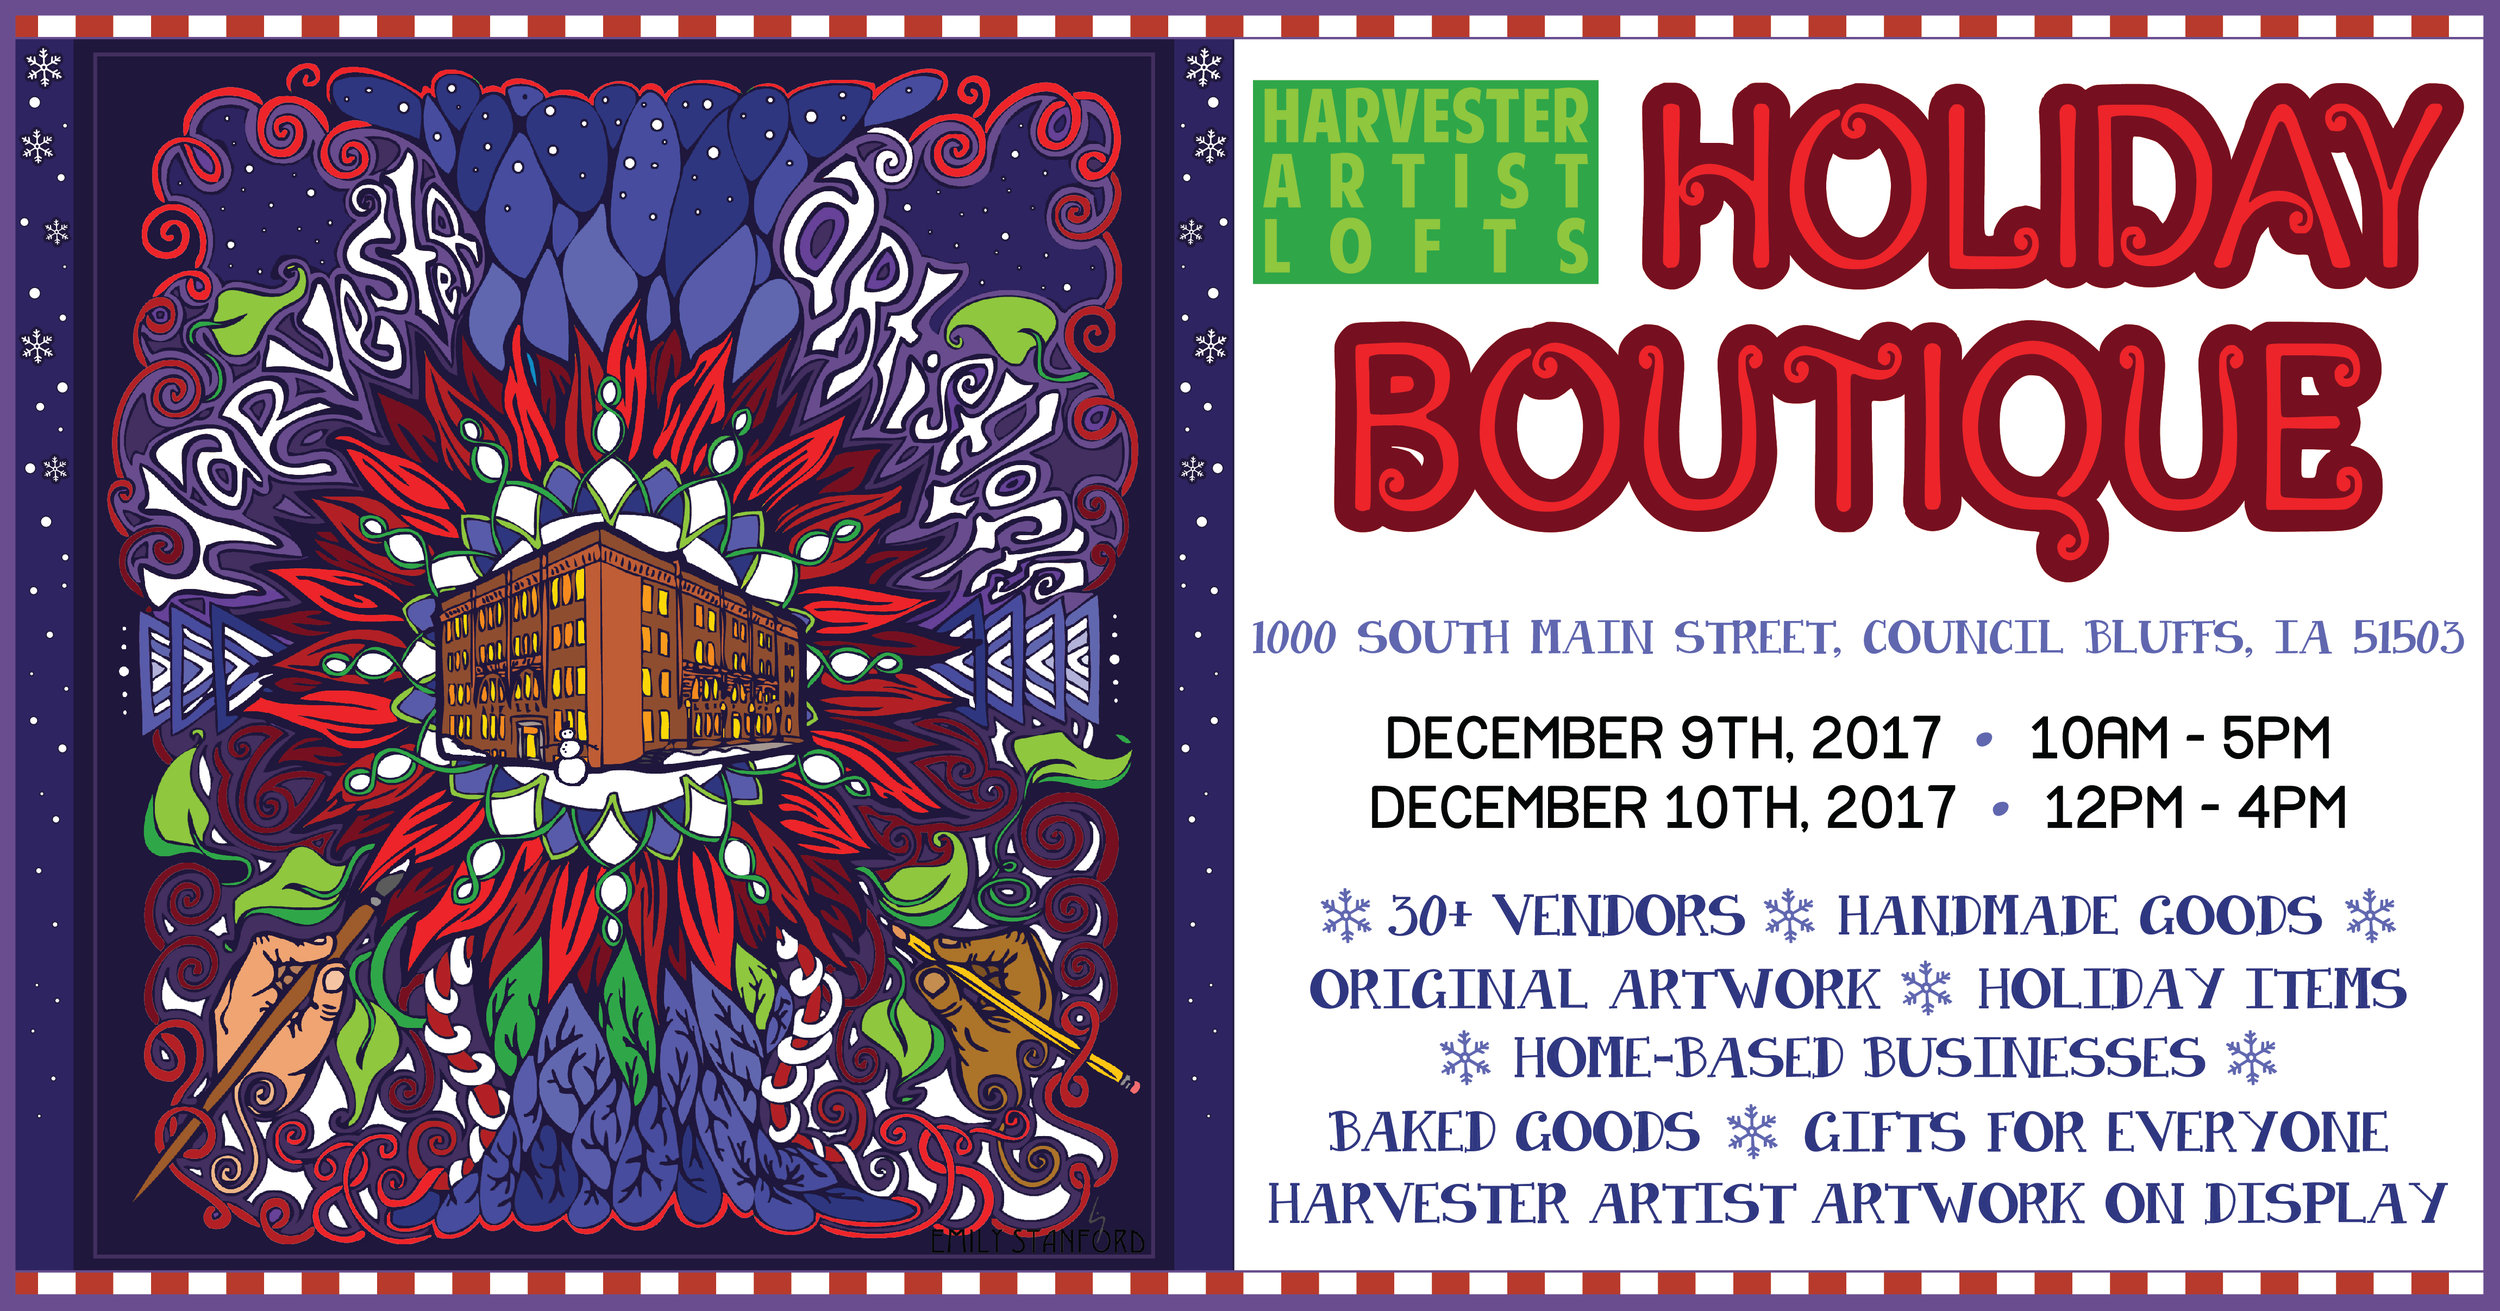 Holiday Boutique Facebook Event Image.jpg